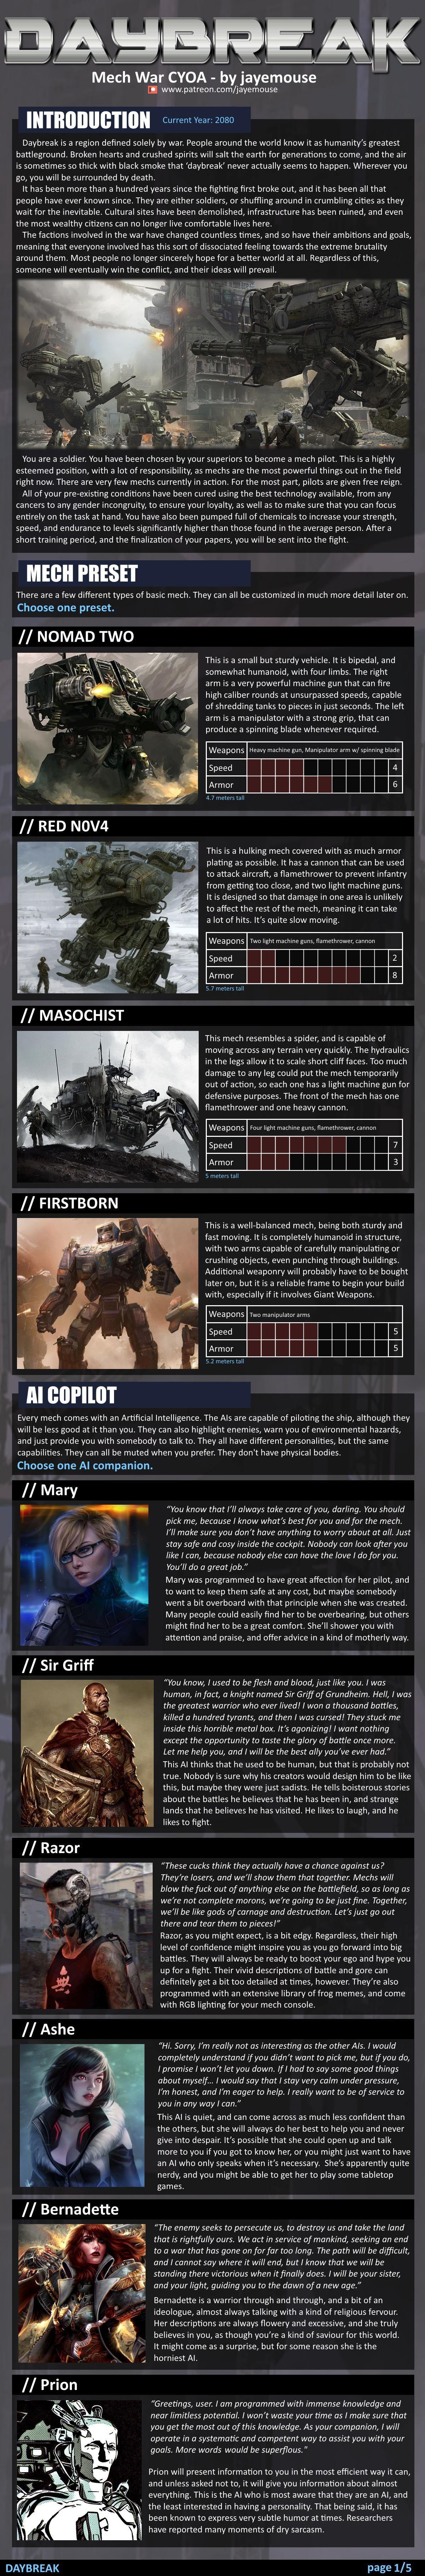 Daybreak cyoa . what is better a gun with high rate of fire, but it has small caliber or gun low with low rate of fire but it ha big caliber.. I always get sad when I see giant tables like this thinking it would make for such an awesome fps game but it will never be more than a dream... just a little s